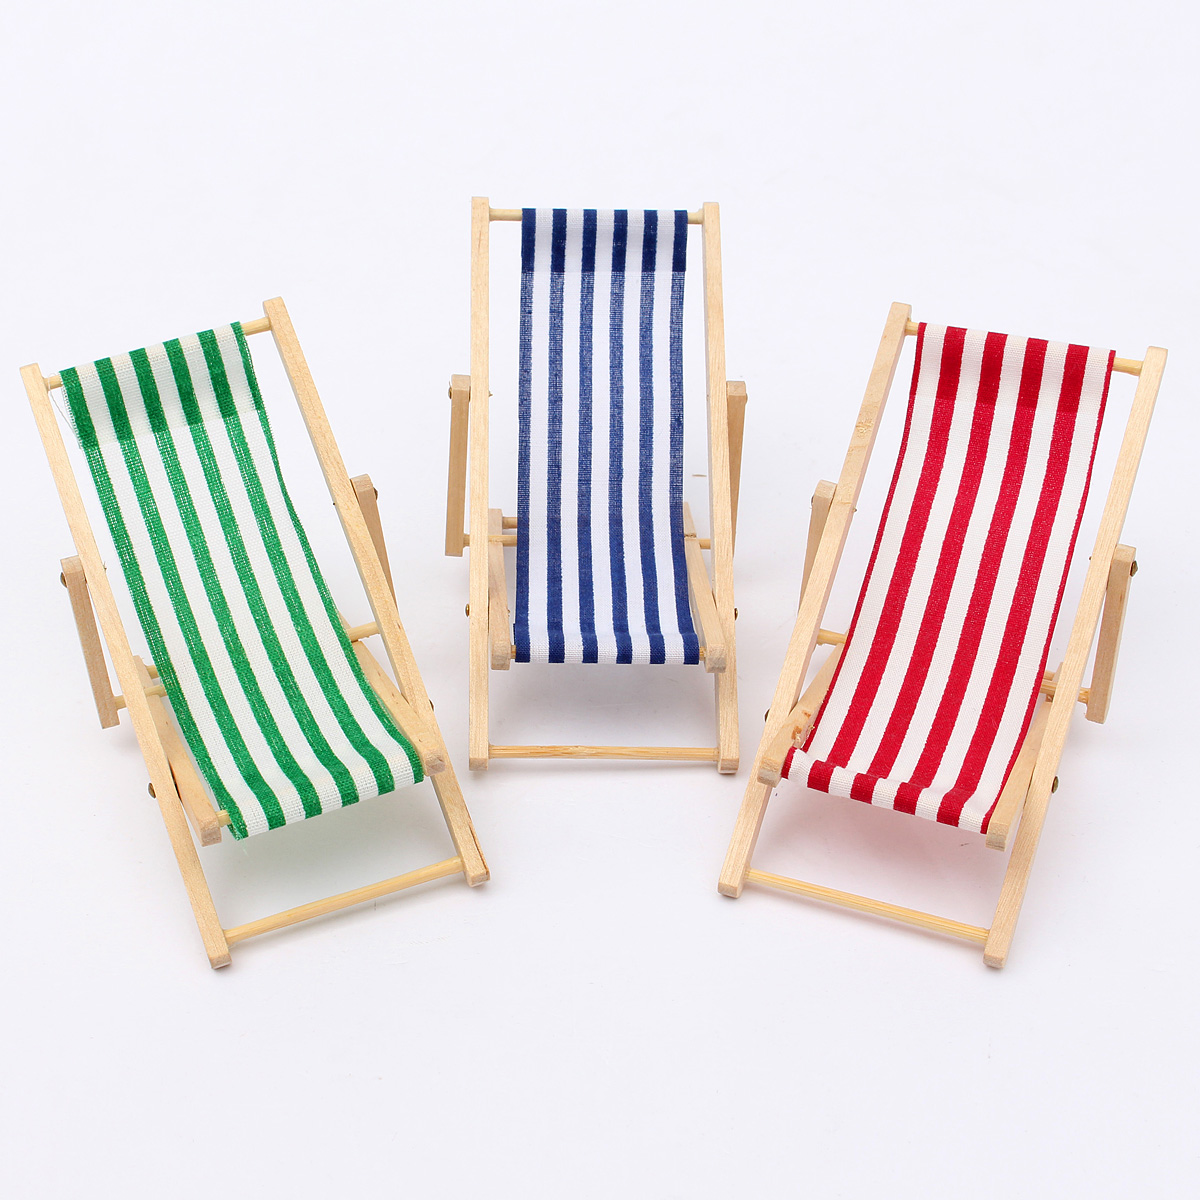 retro living room furniture sets long curtains for new dolls house 1:12 miniature foldable wooden deckchair ...